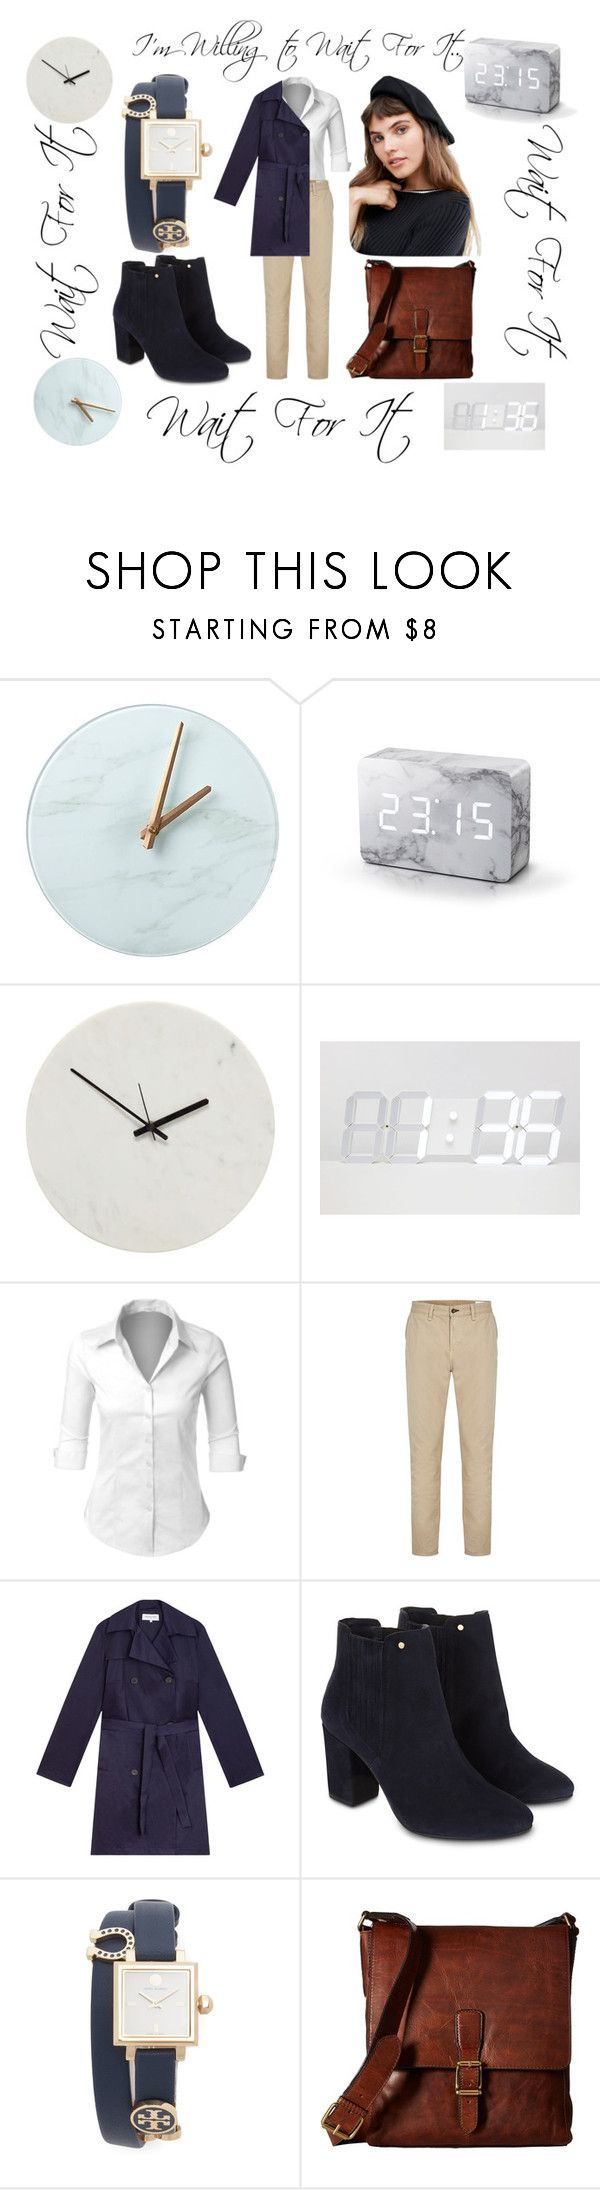 """""""Wait For It"""" by gryffindor-designer on Polyvore featuring Gingko Electronics, Holly's House, LE3NO, rag & bone, Gérard Darel, Monsoon, Tory Burch, Frye and ALDO"""